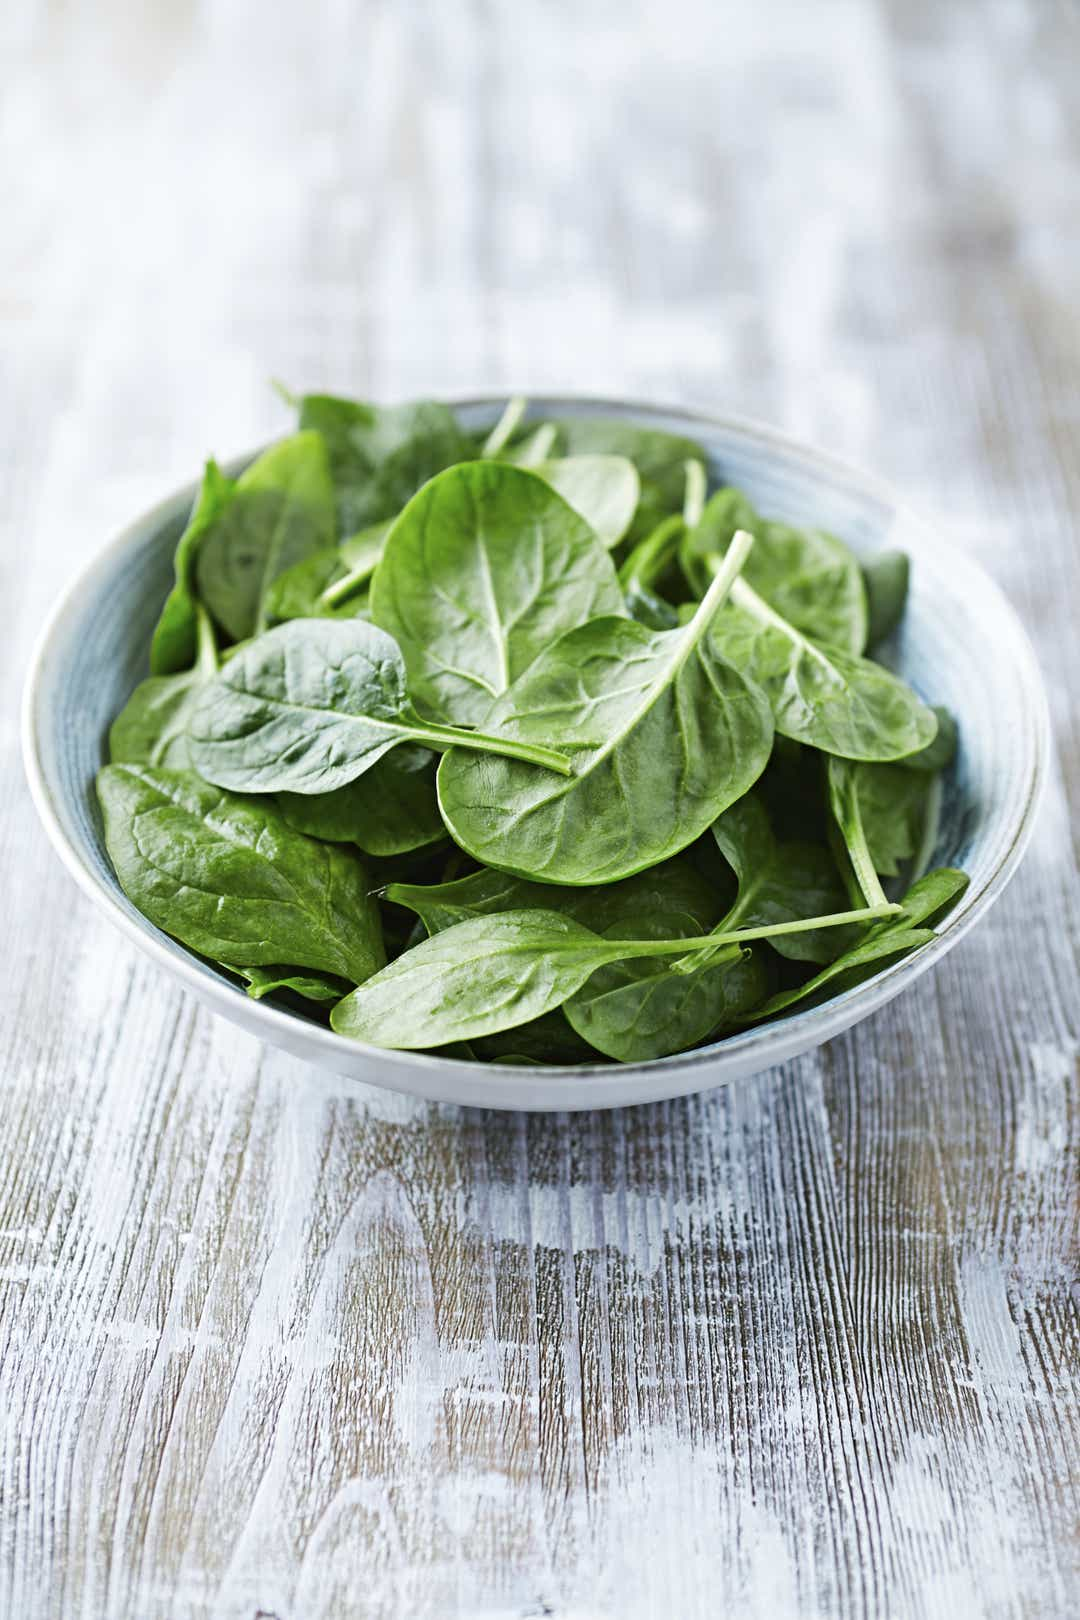 Frozen Cut Spinach Leaves contaminated with Listeria